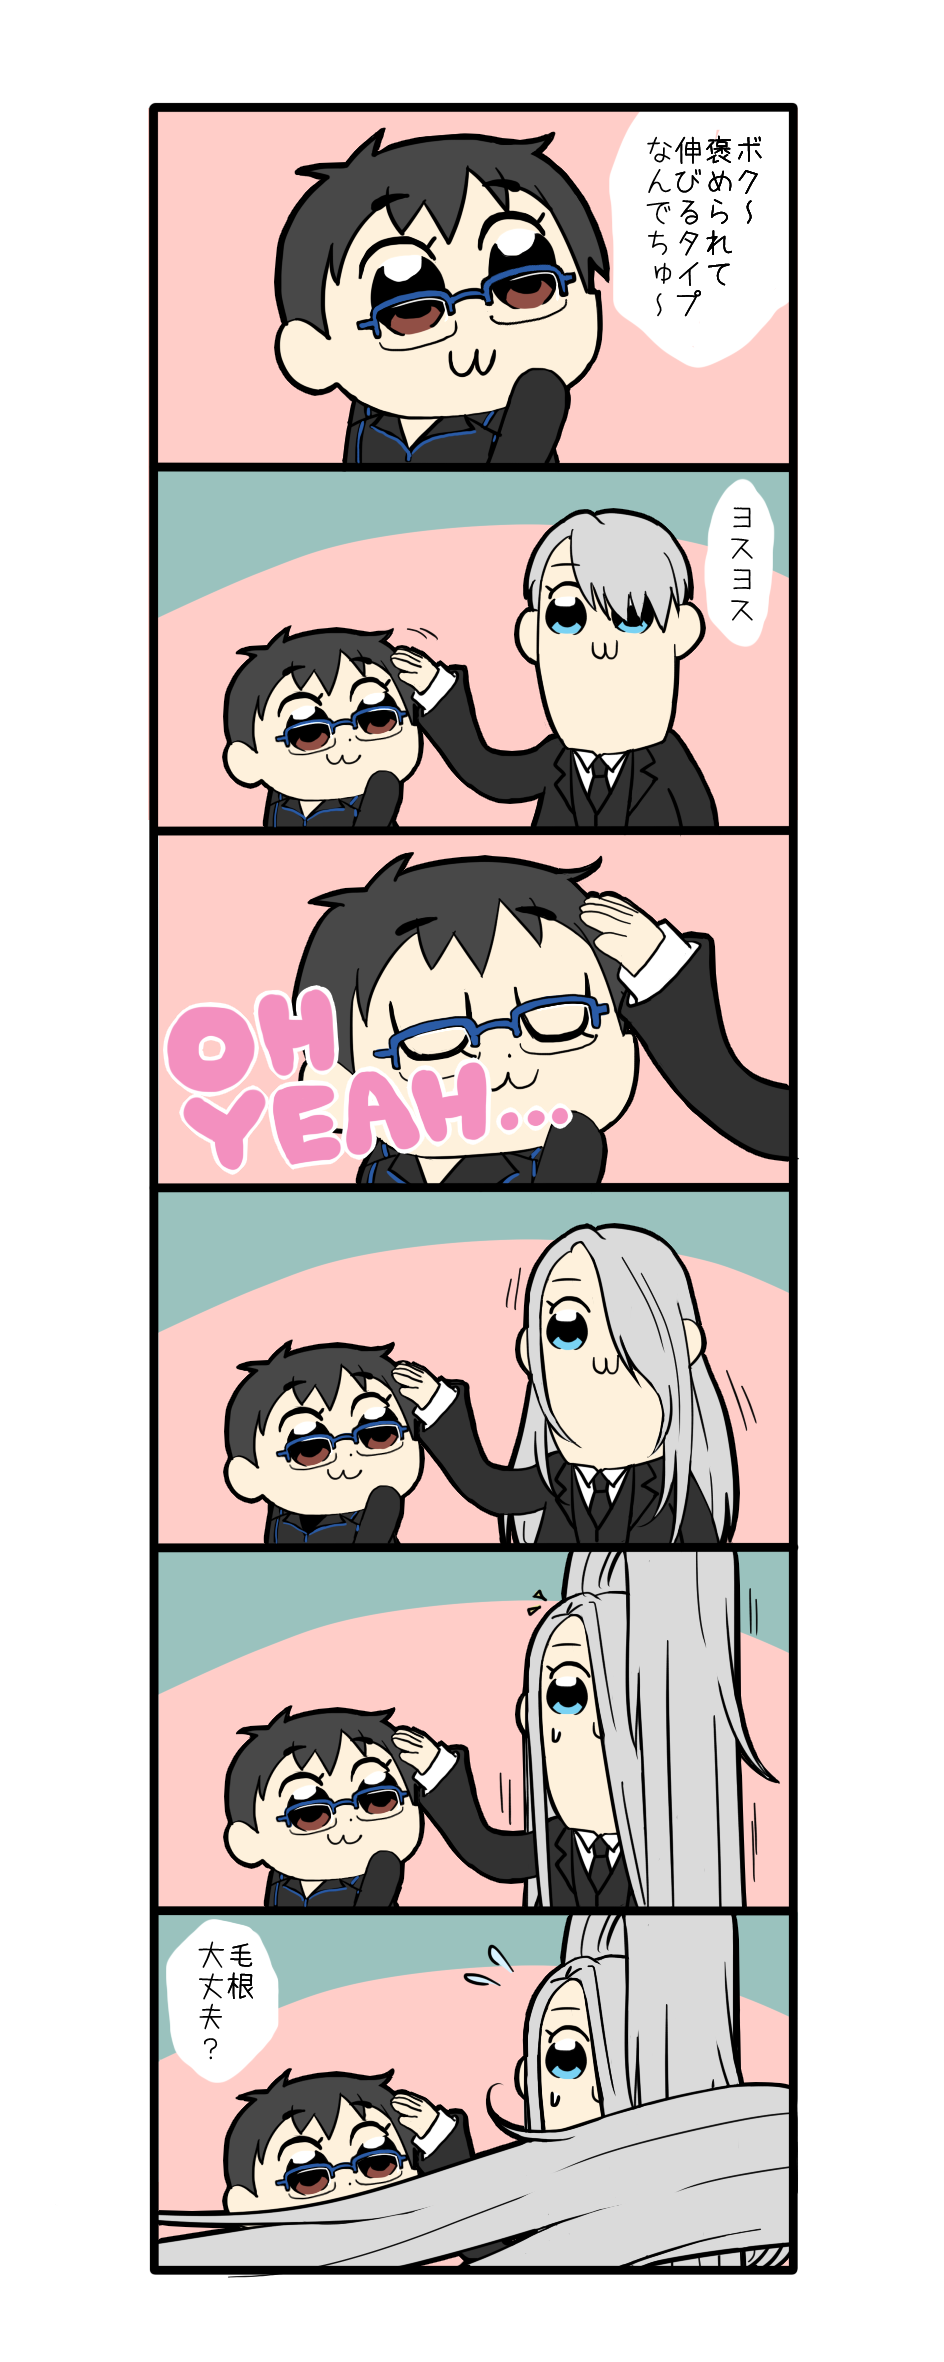 2boys 6koma :3 alternate_hair_length alternate_hairstyle bkub_(style) black_hair blue-framed_eyewear blue_eyes brown_eyes comic formal glasses highres jacket kanata_(sun_kanata) katsuki_yuuri long_hair male_focus multiple_boys necktie parody petting poptepipic silver_hair style_parody suit track_jacket translation_request viktor_nikiforov yuri!!!_on_ice